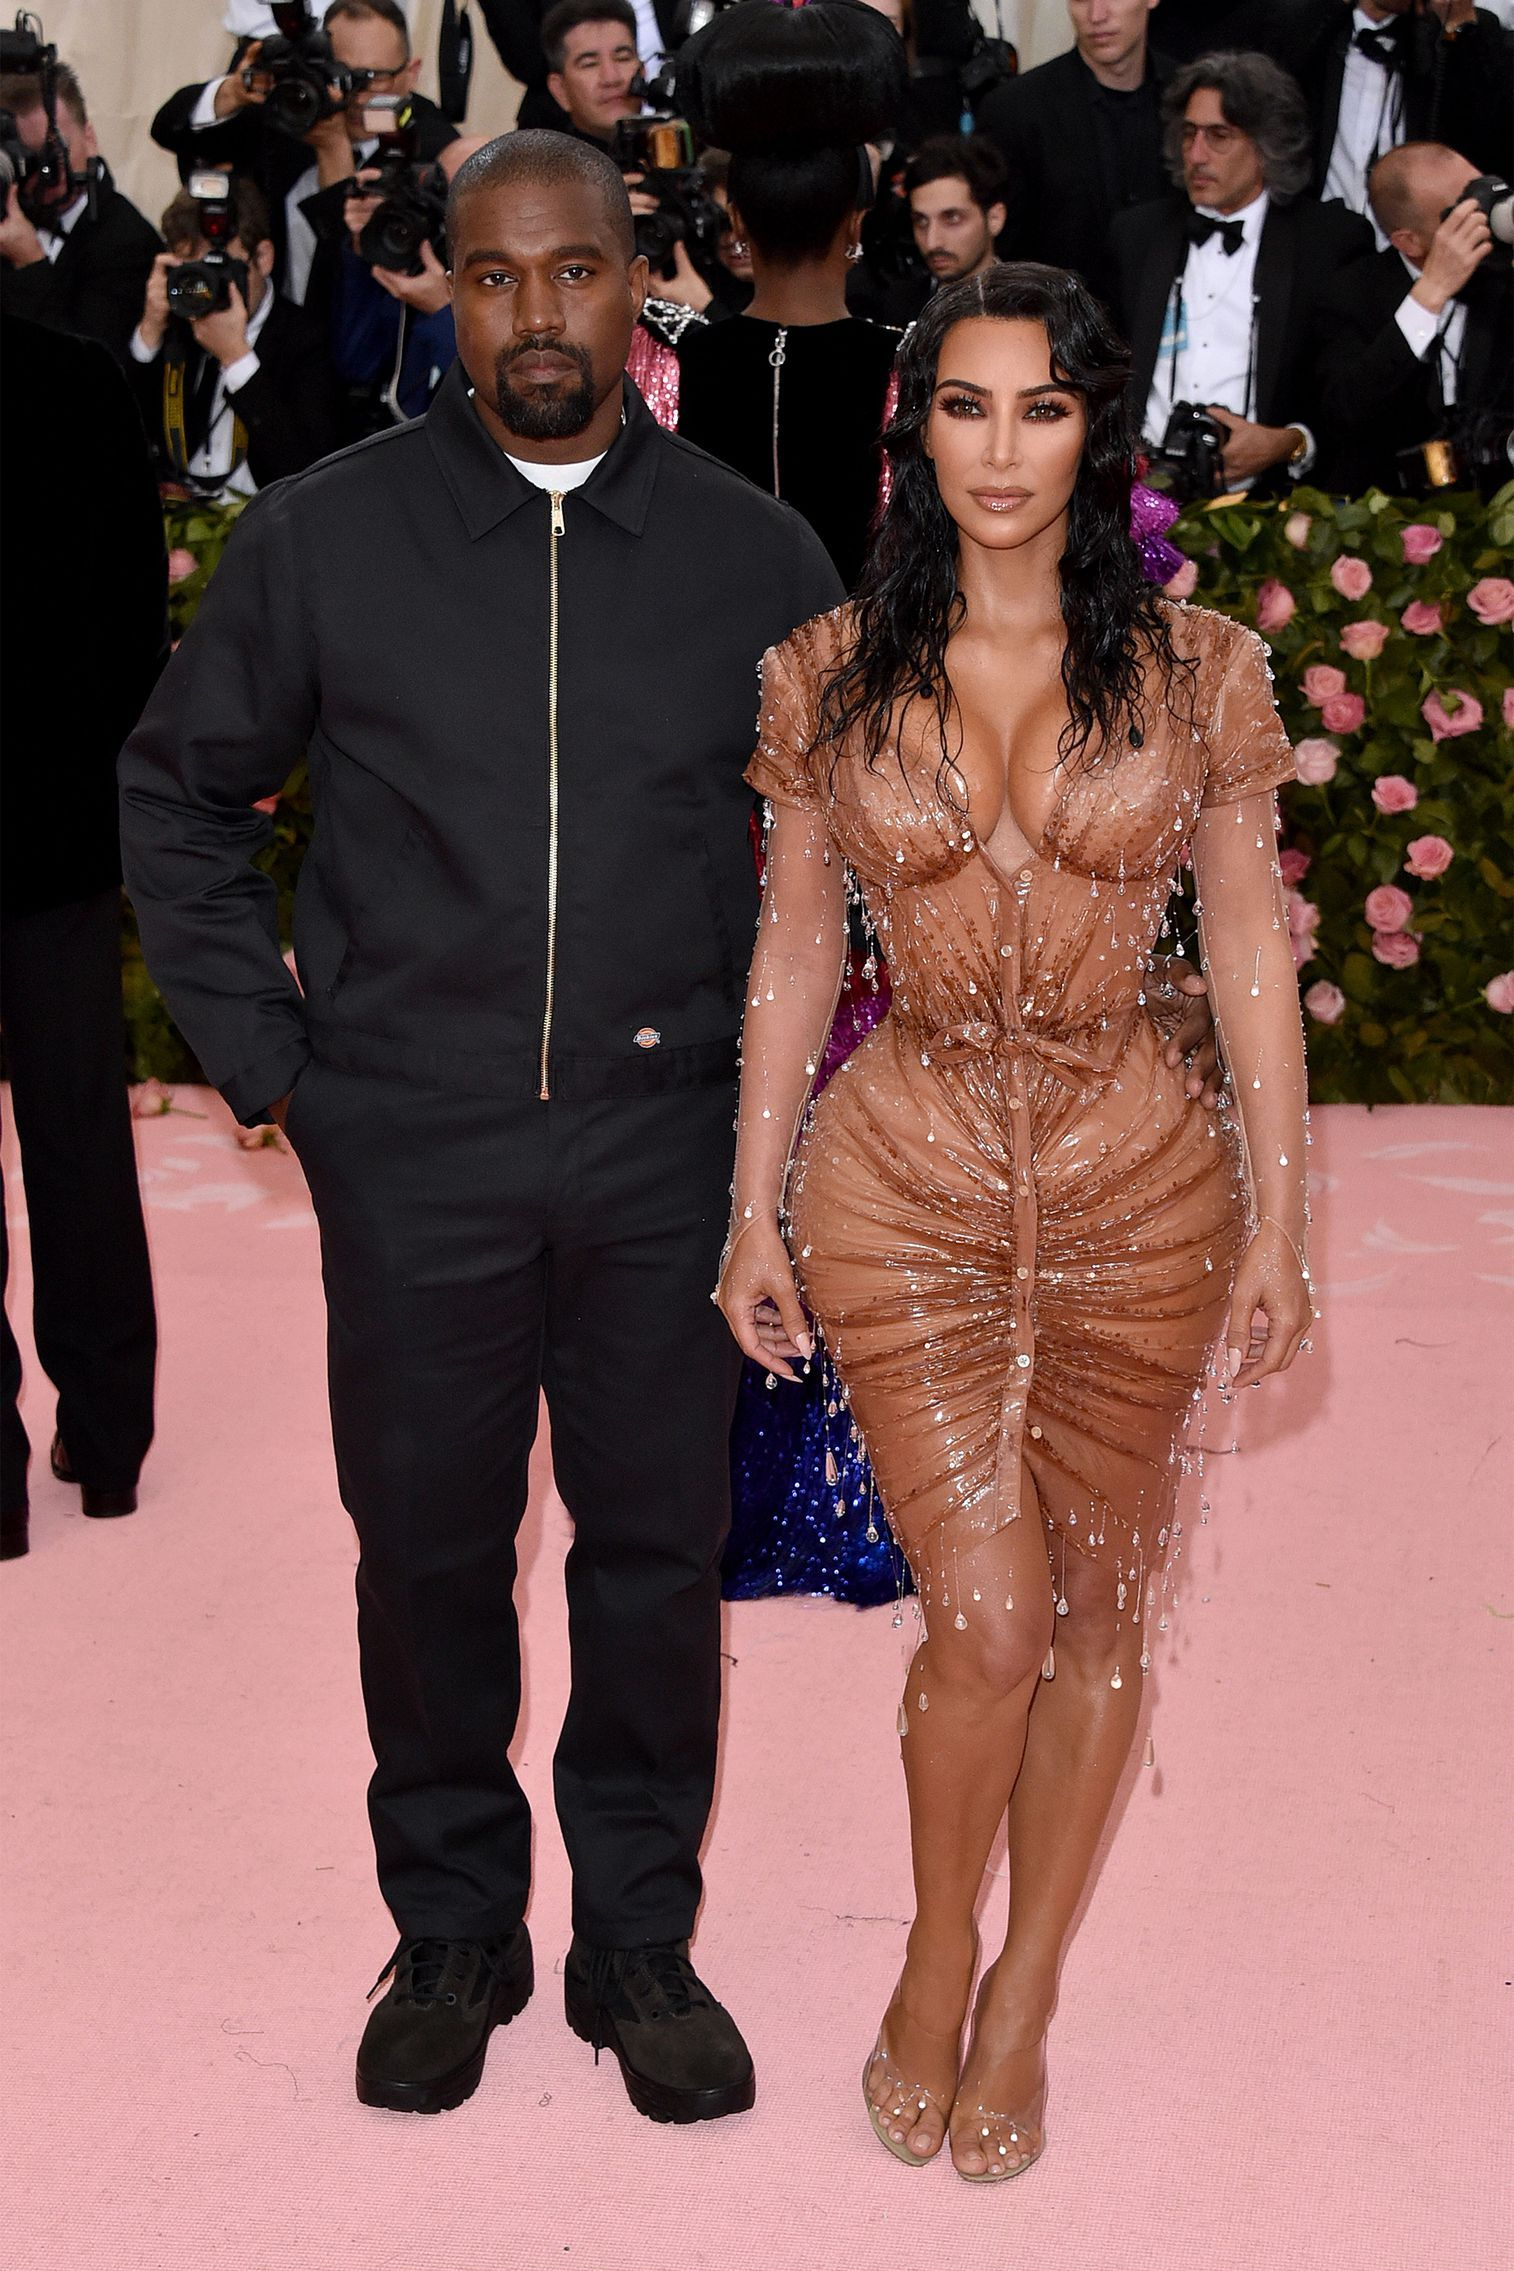 The Best Celebrity Couples On The 2019 Met Gala Red Carpet Met Gala Kim Kardashian And Kanye Met Gala Red Carpet